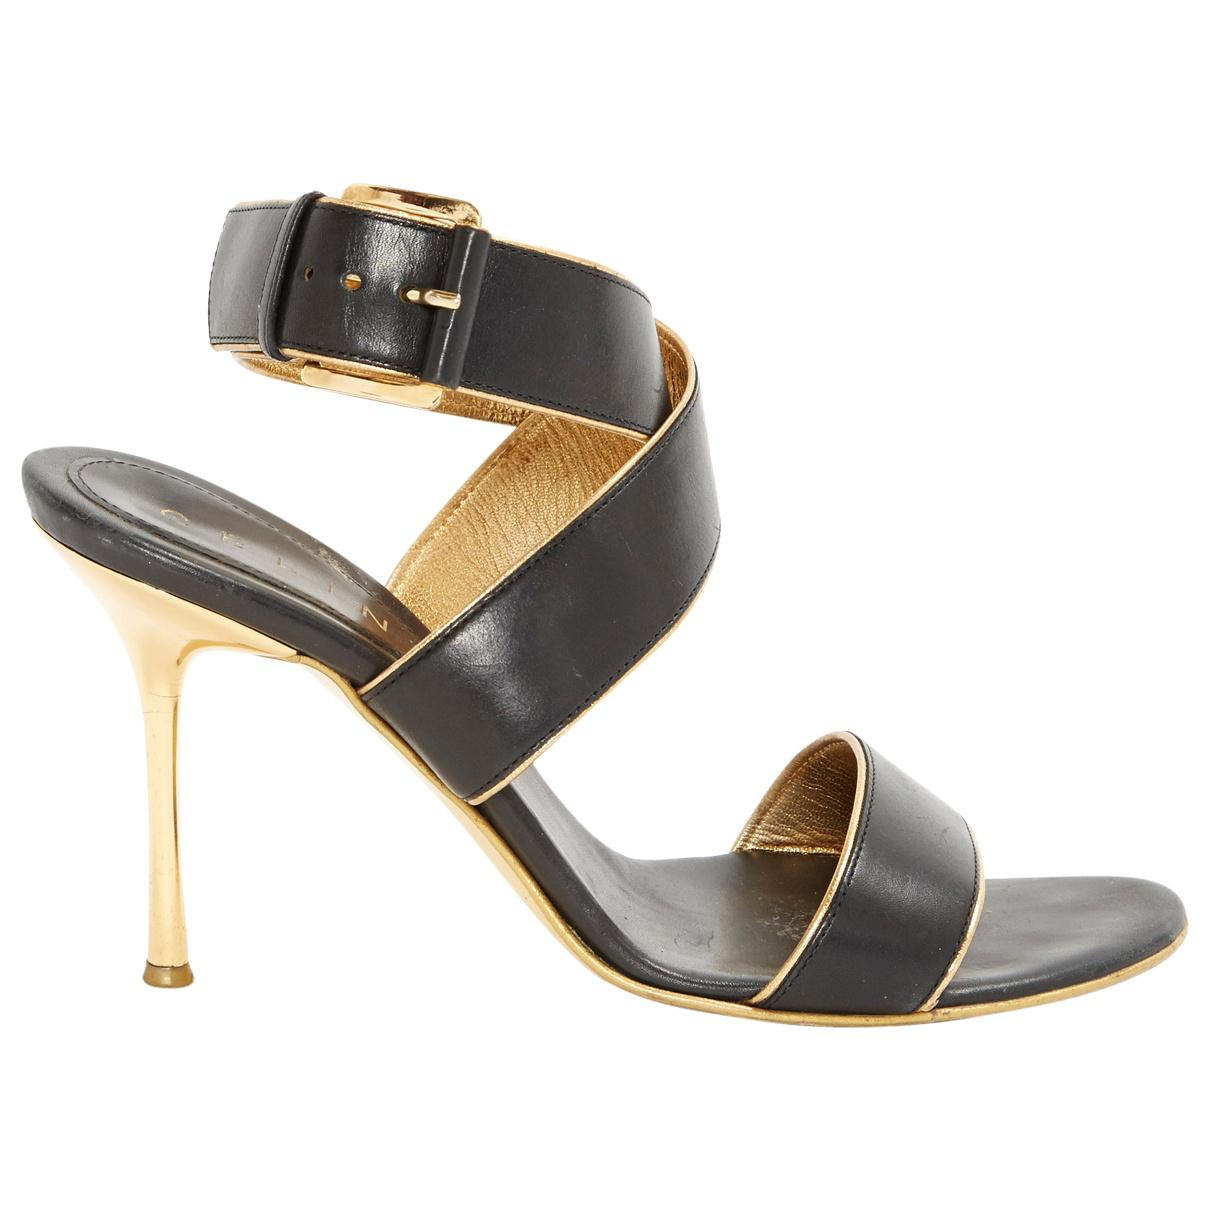 Pre-owned - Leather sandals Celine Cheap Cheap Online JehSo5k0